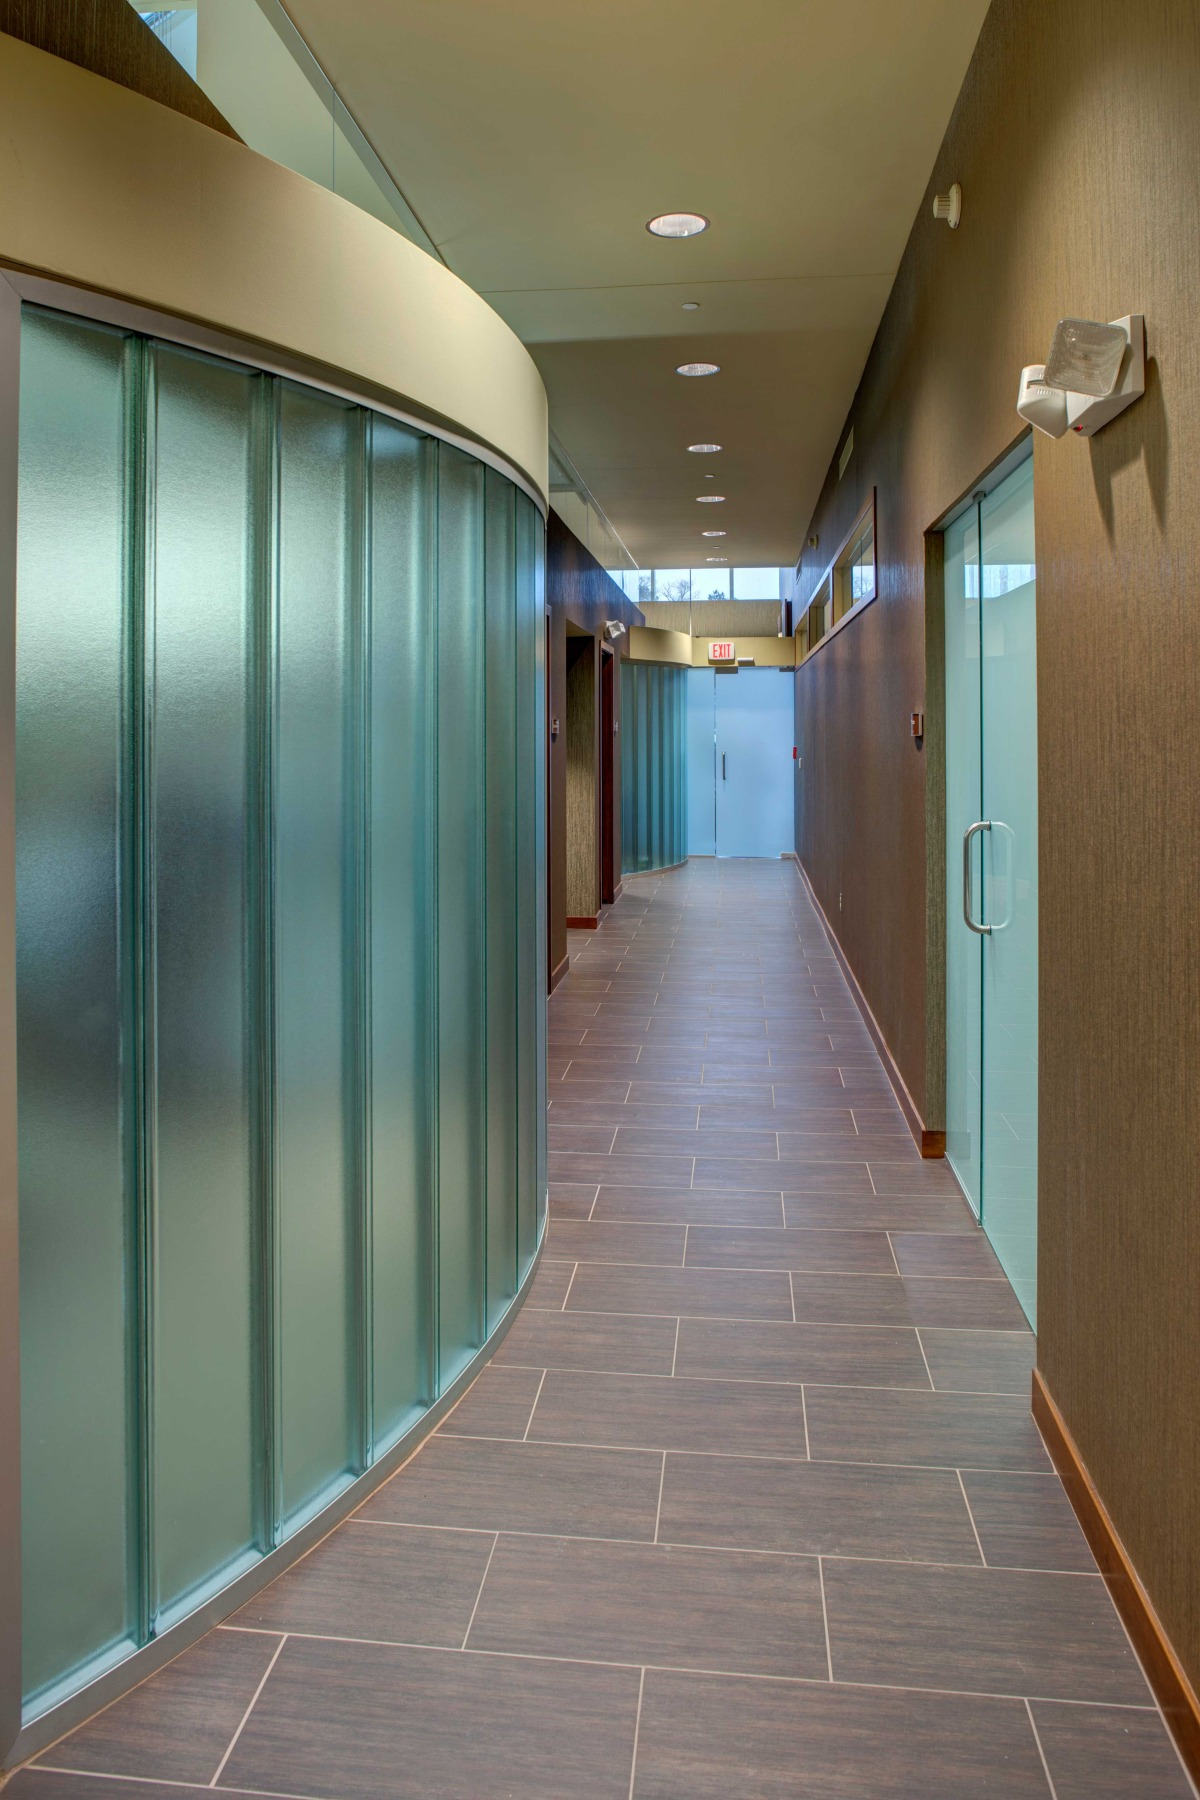 AFTER - Corridor outside Conference Room